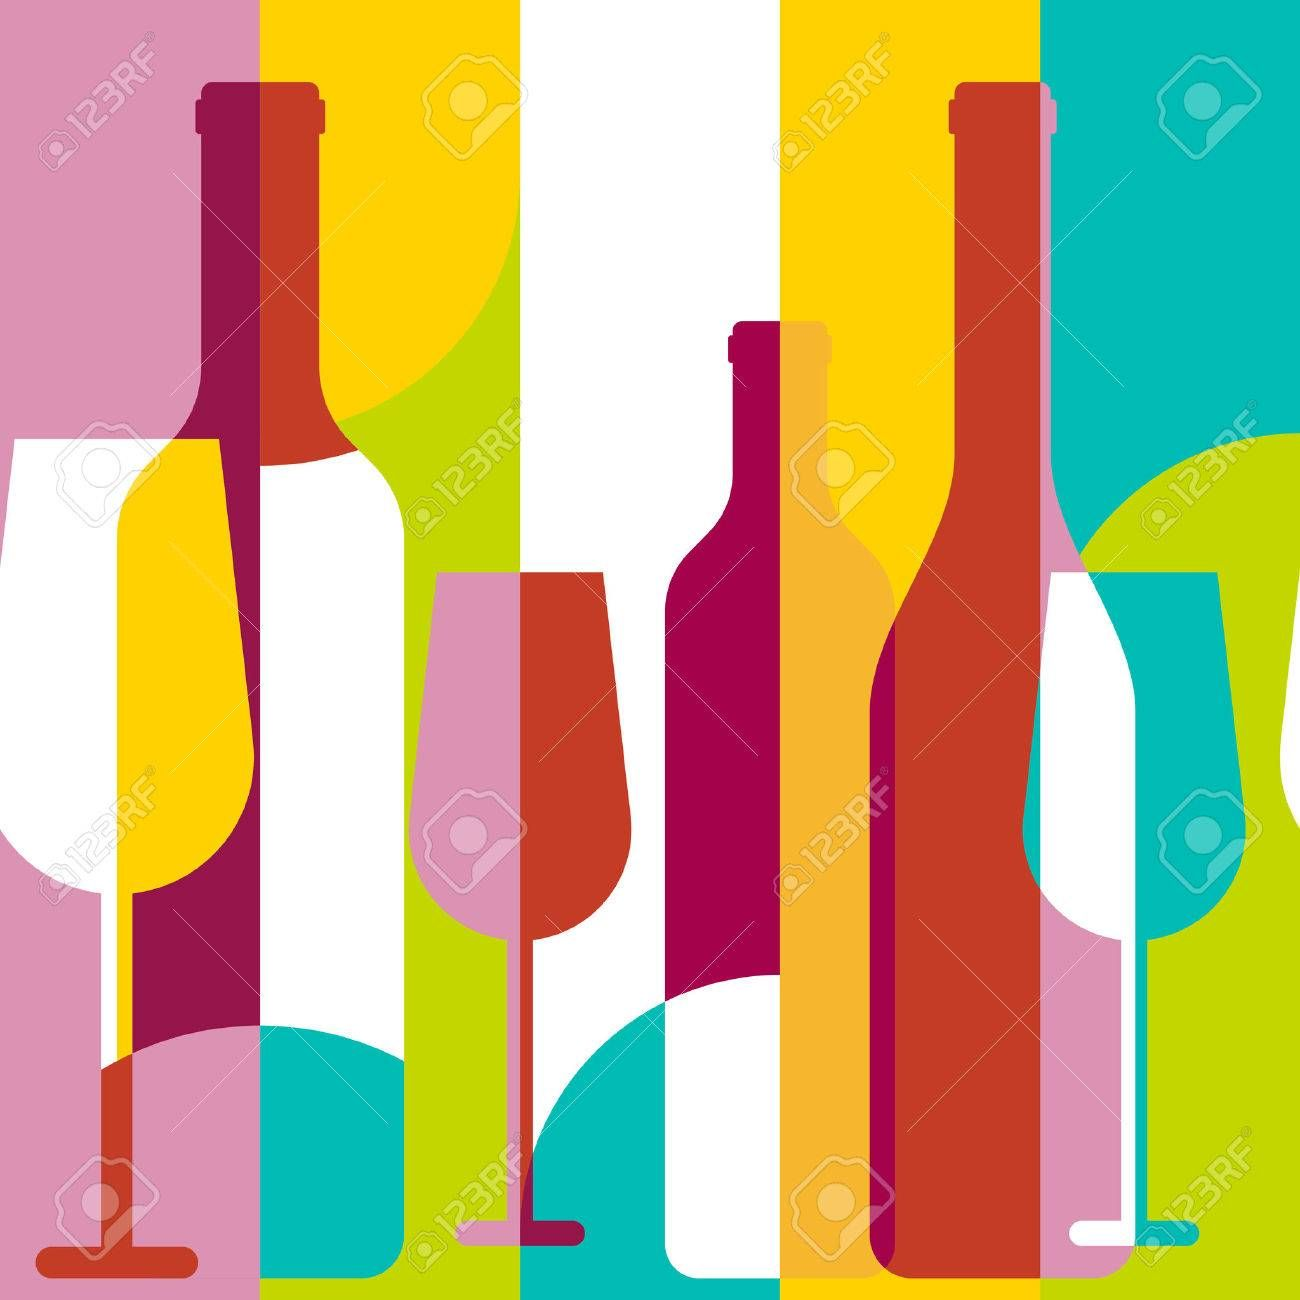 Vector Seamless Background Wine Bottle And Glass Silhouette Abstract Flat Color Blocking Geometric Illustration Poster Design Wine Bottle Seamless Background